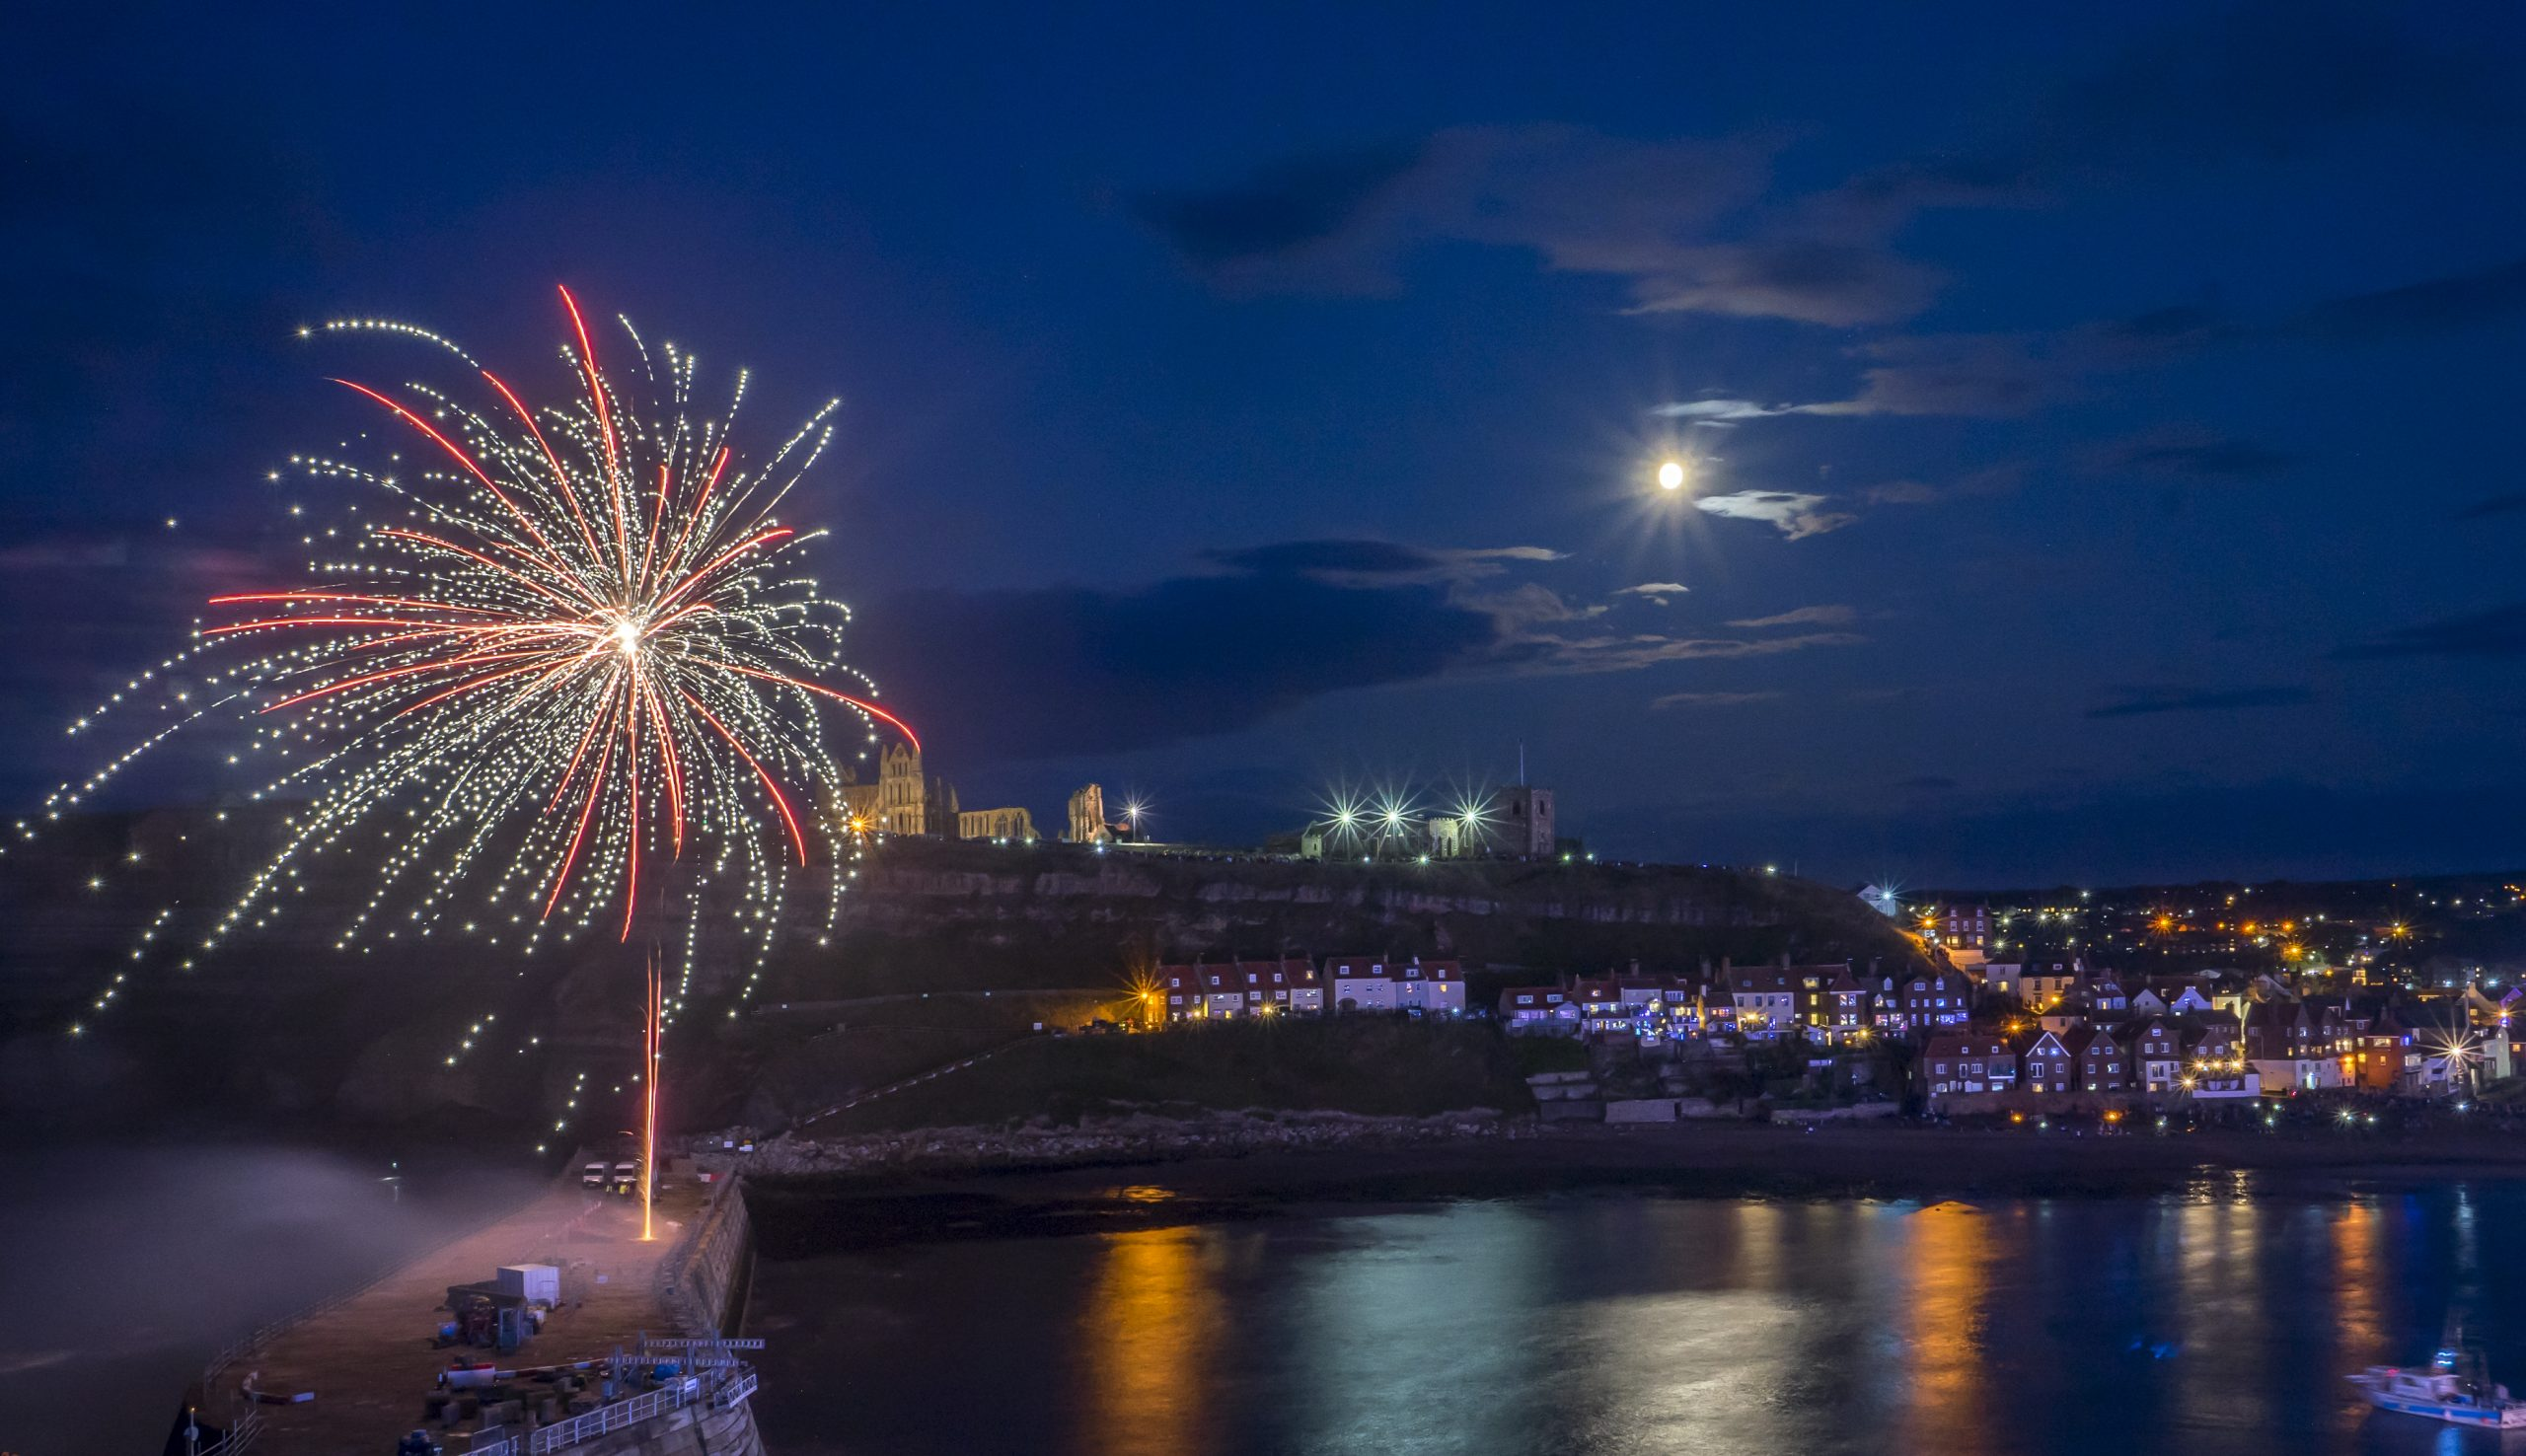 fireworks during the night in Whitby, North Yorkshire